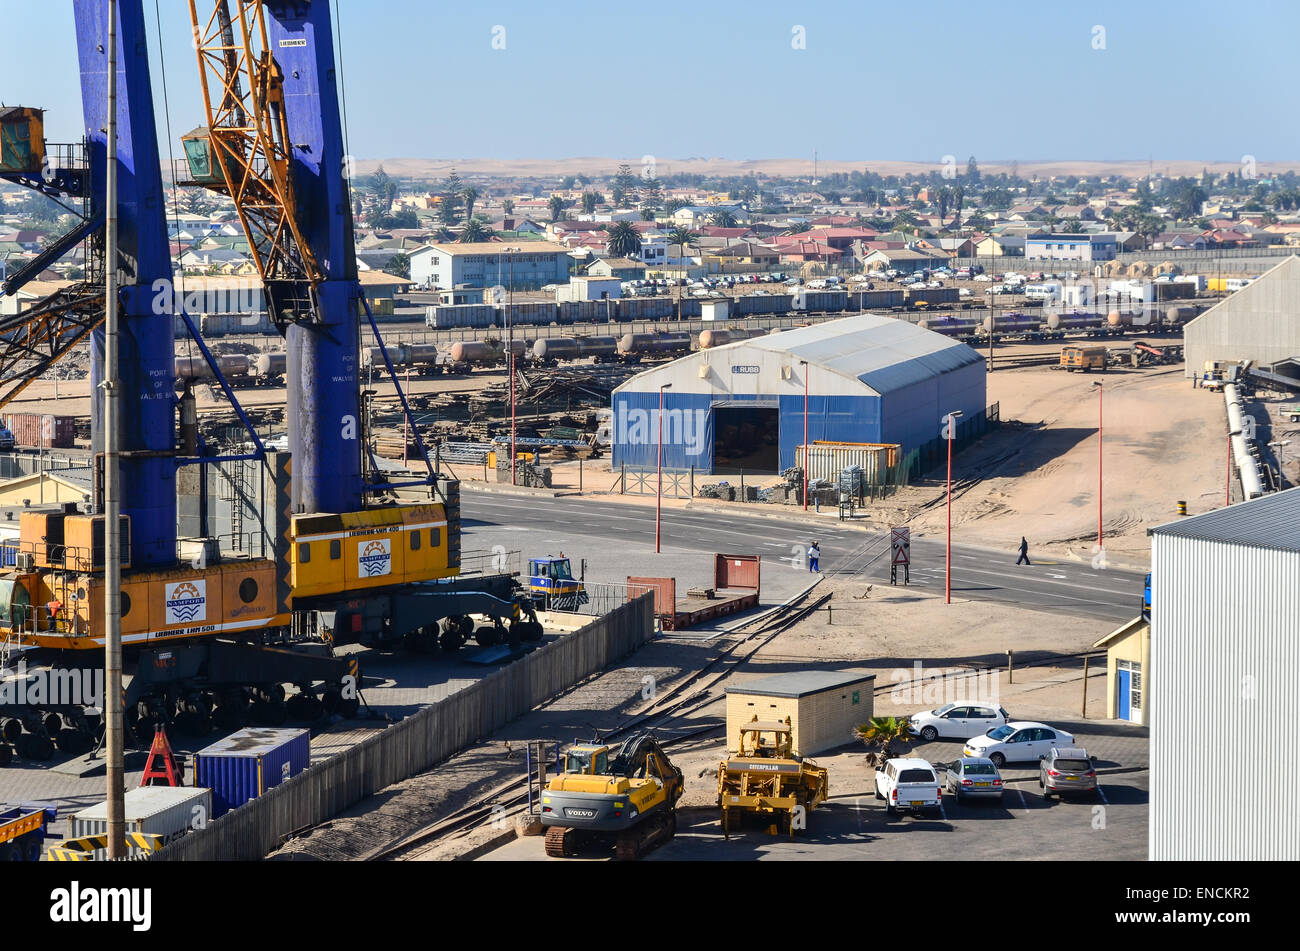 Cranes of the general cargo terminal and city of Walvis Bay, Namibia - Stock Image